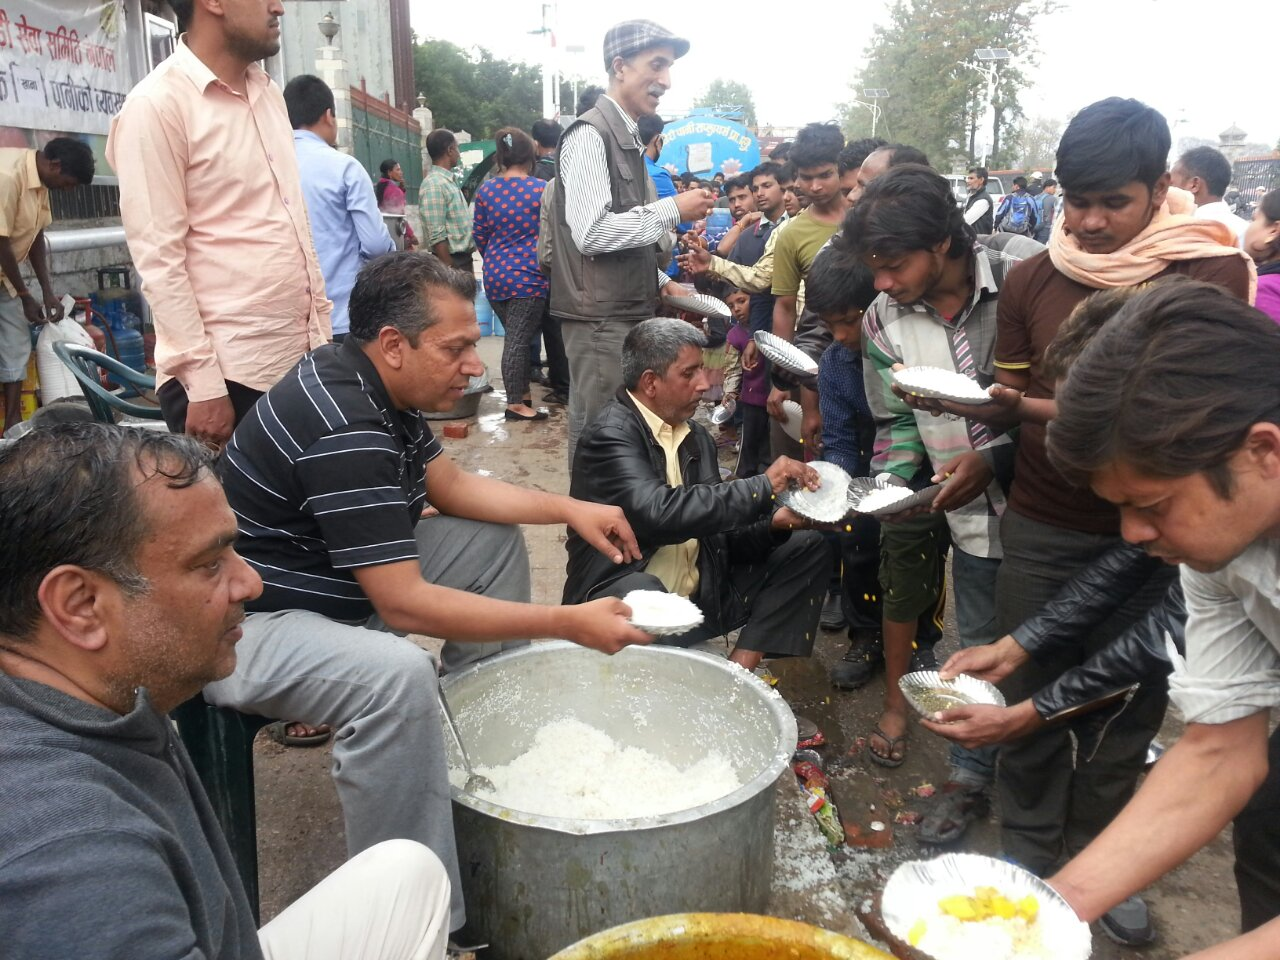 Local communities and civil society have been responding to the earthquake in Kathmandu. Volunteers from Marwari Sewa Samiti distribute cooked meals to people living in the biggest camp in Tudikhel Kathmandu. They have been distributing cooked meals to around 5000 people on a daily basis. There are several such community kitchens around the capital. Photo: DCA/ACT